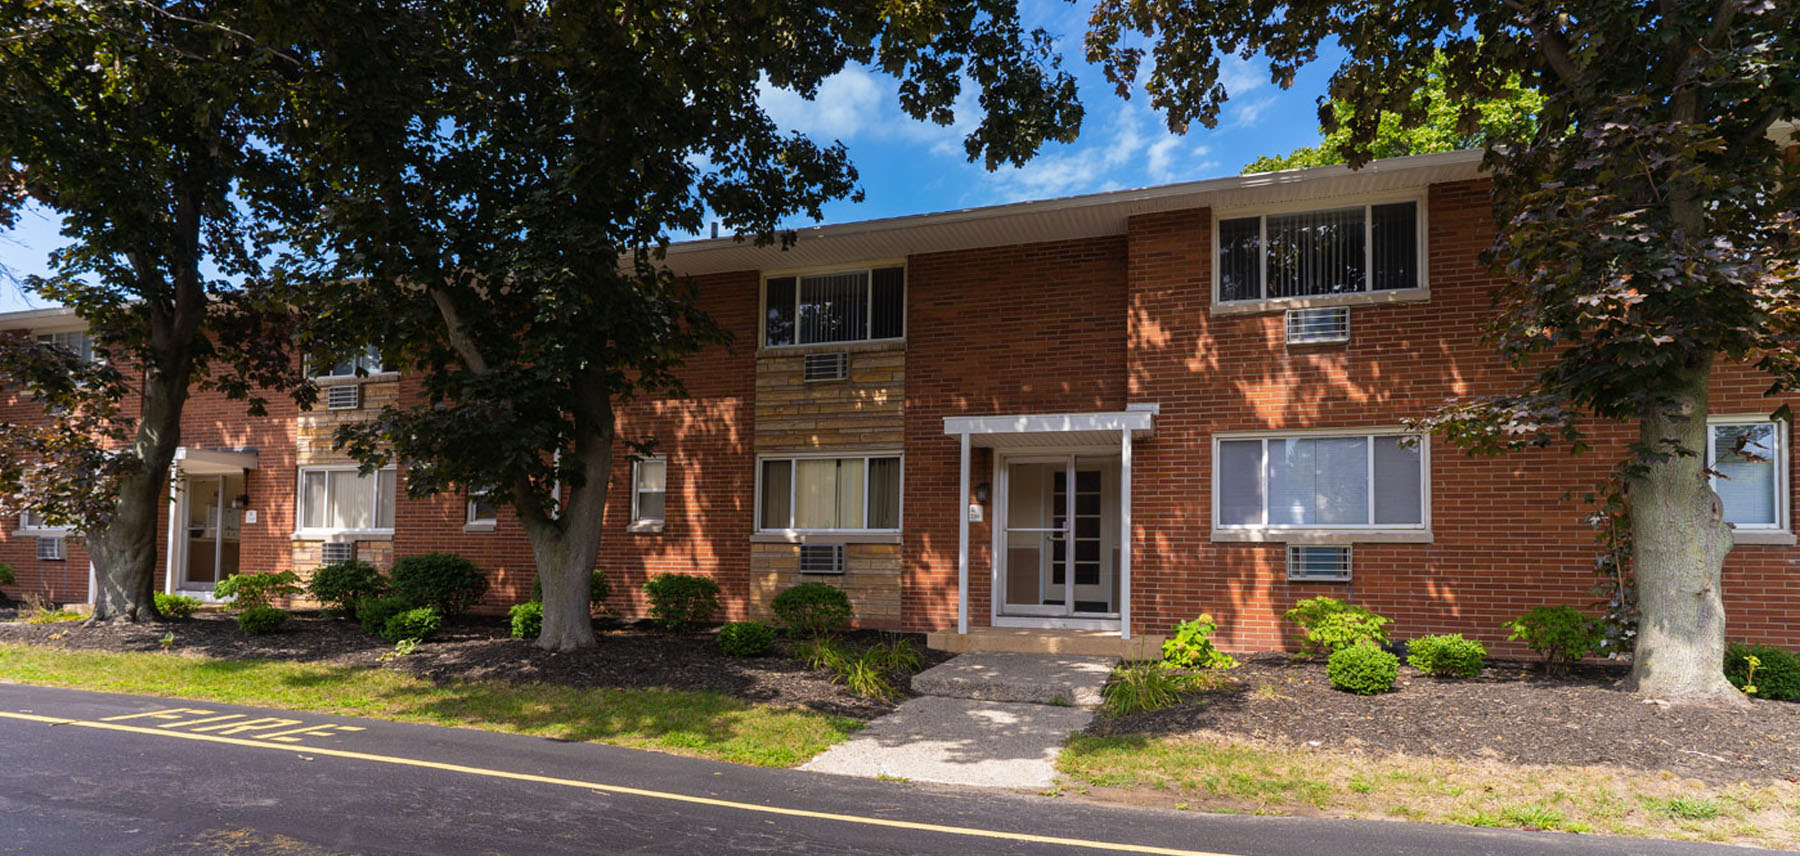 Irondequoit Village Apartments